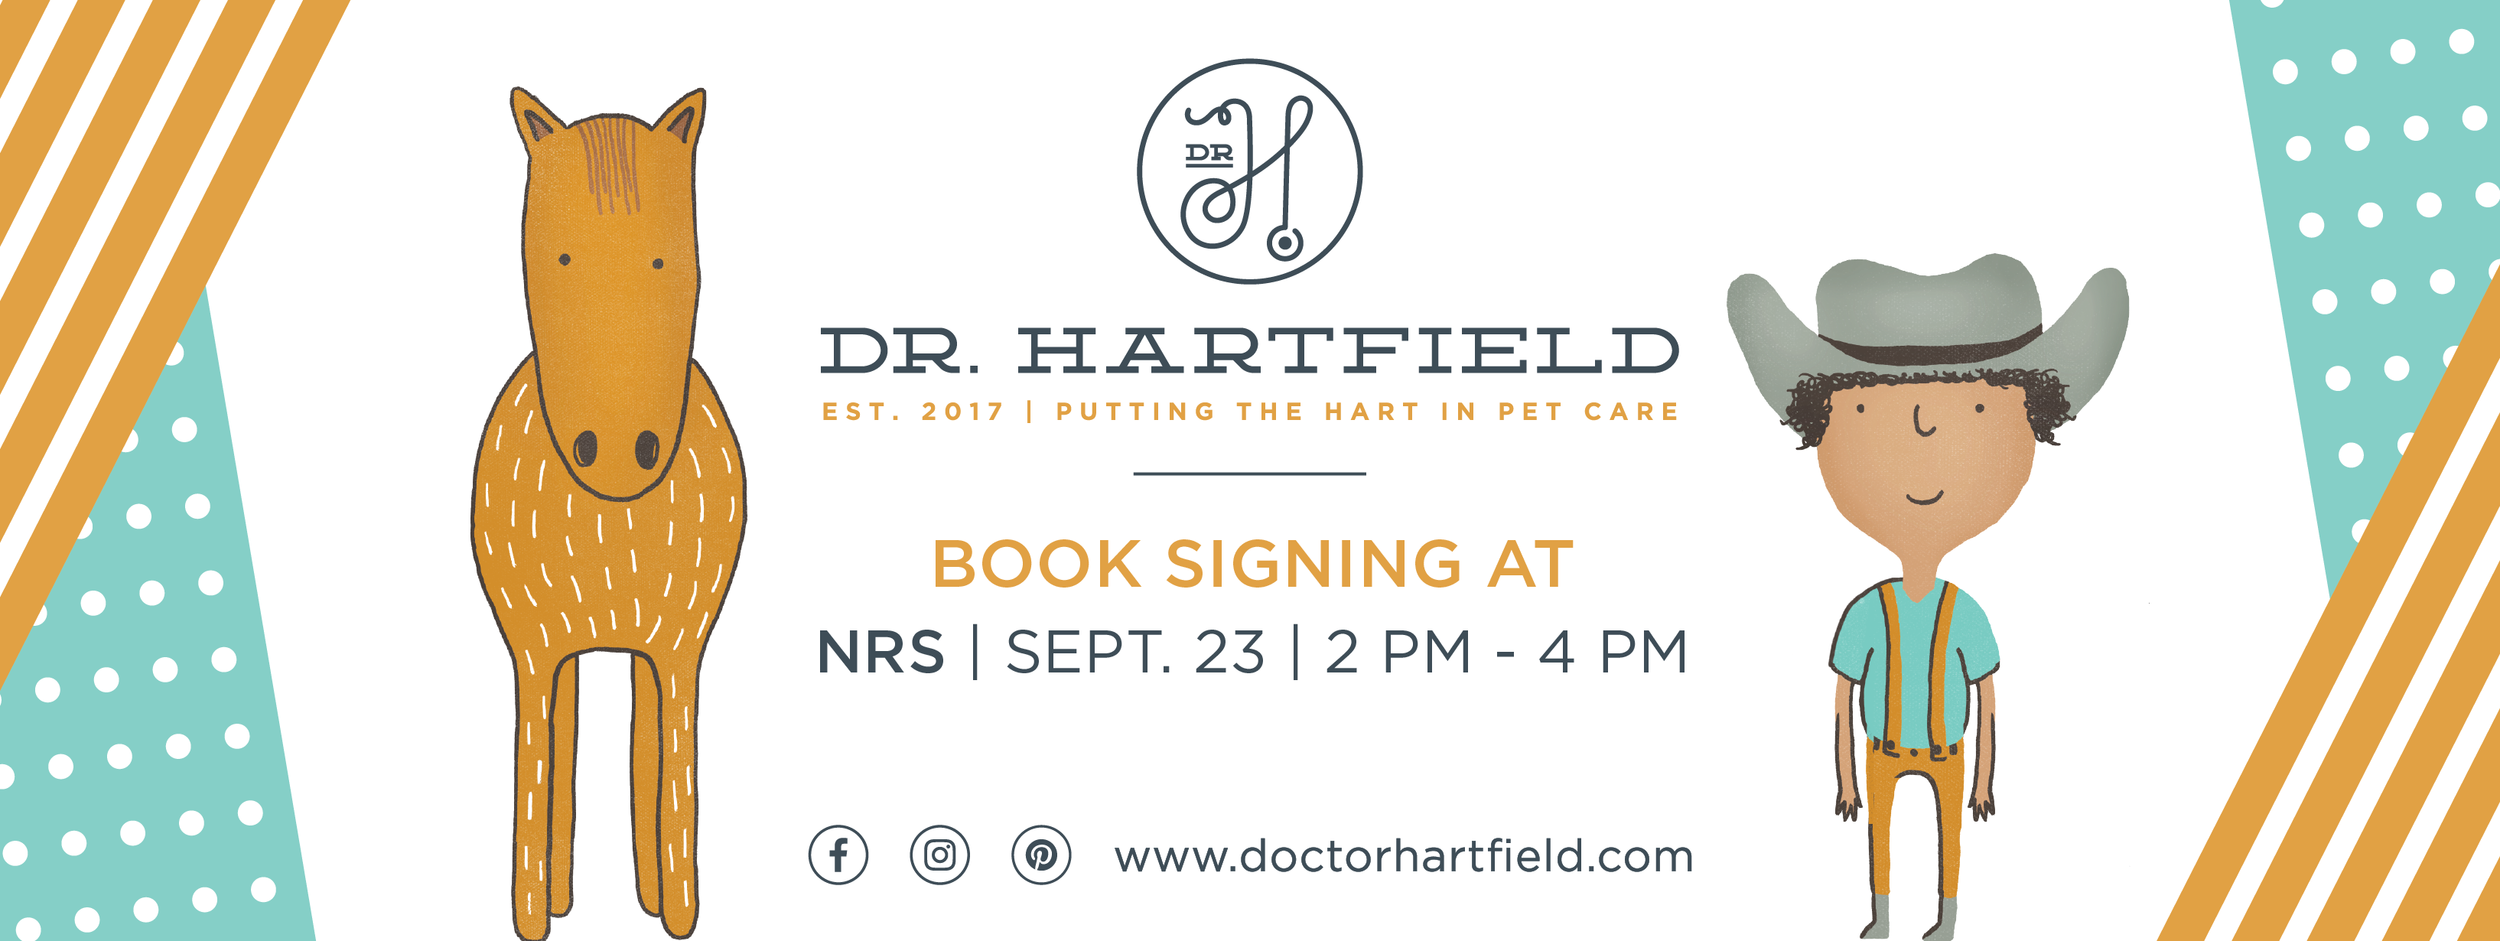 Dr H_NRS_event banner.png